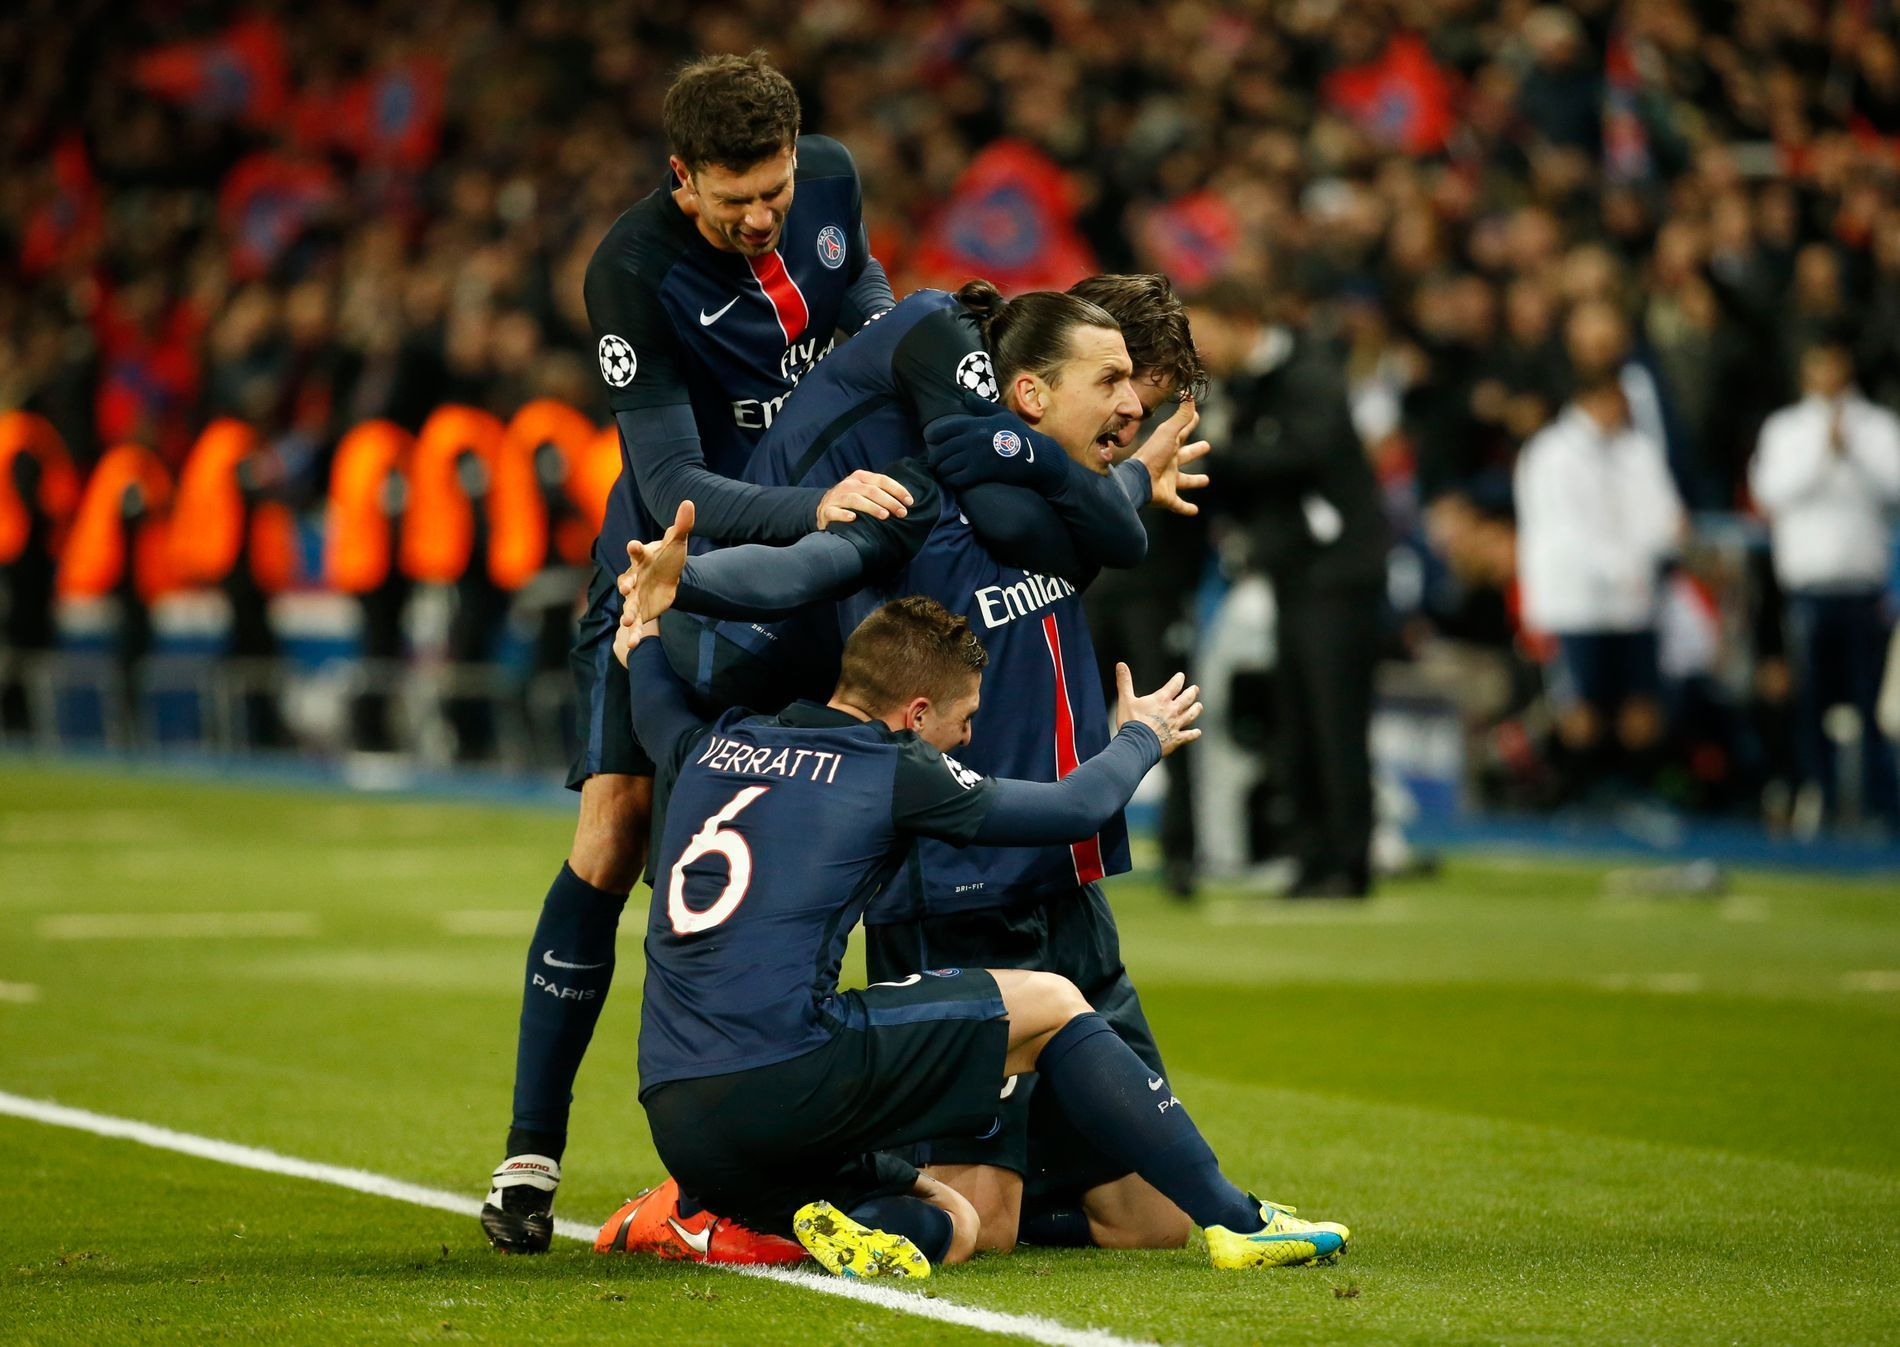 LM, Paris St Germain - Chelsea